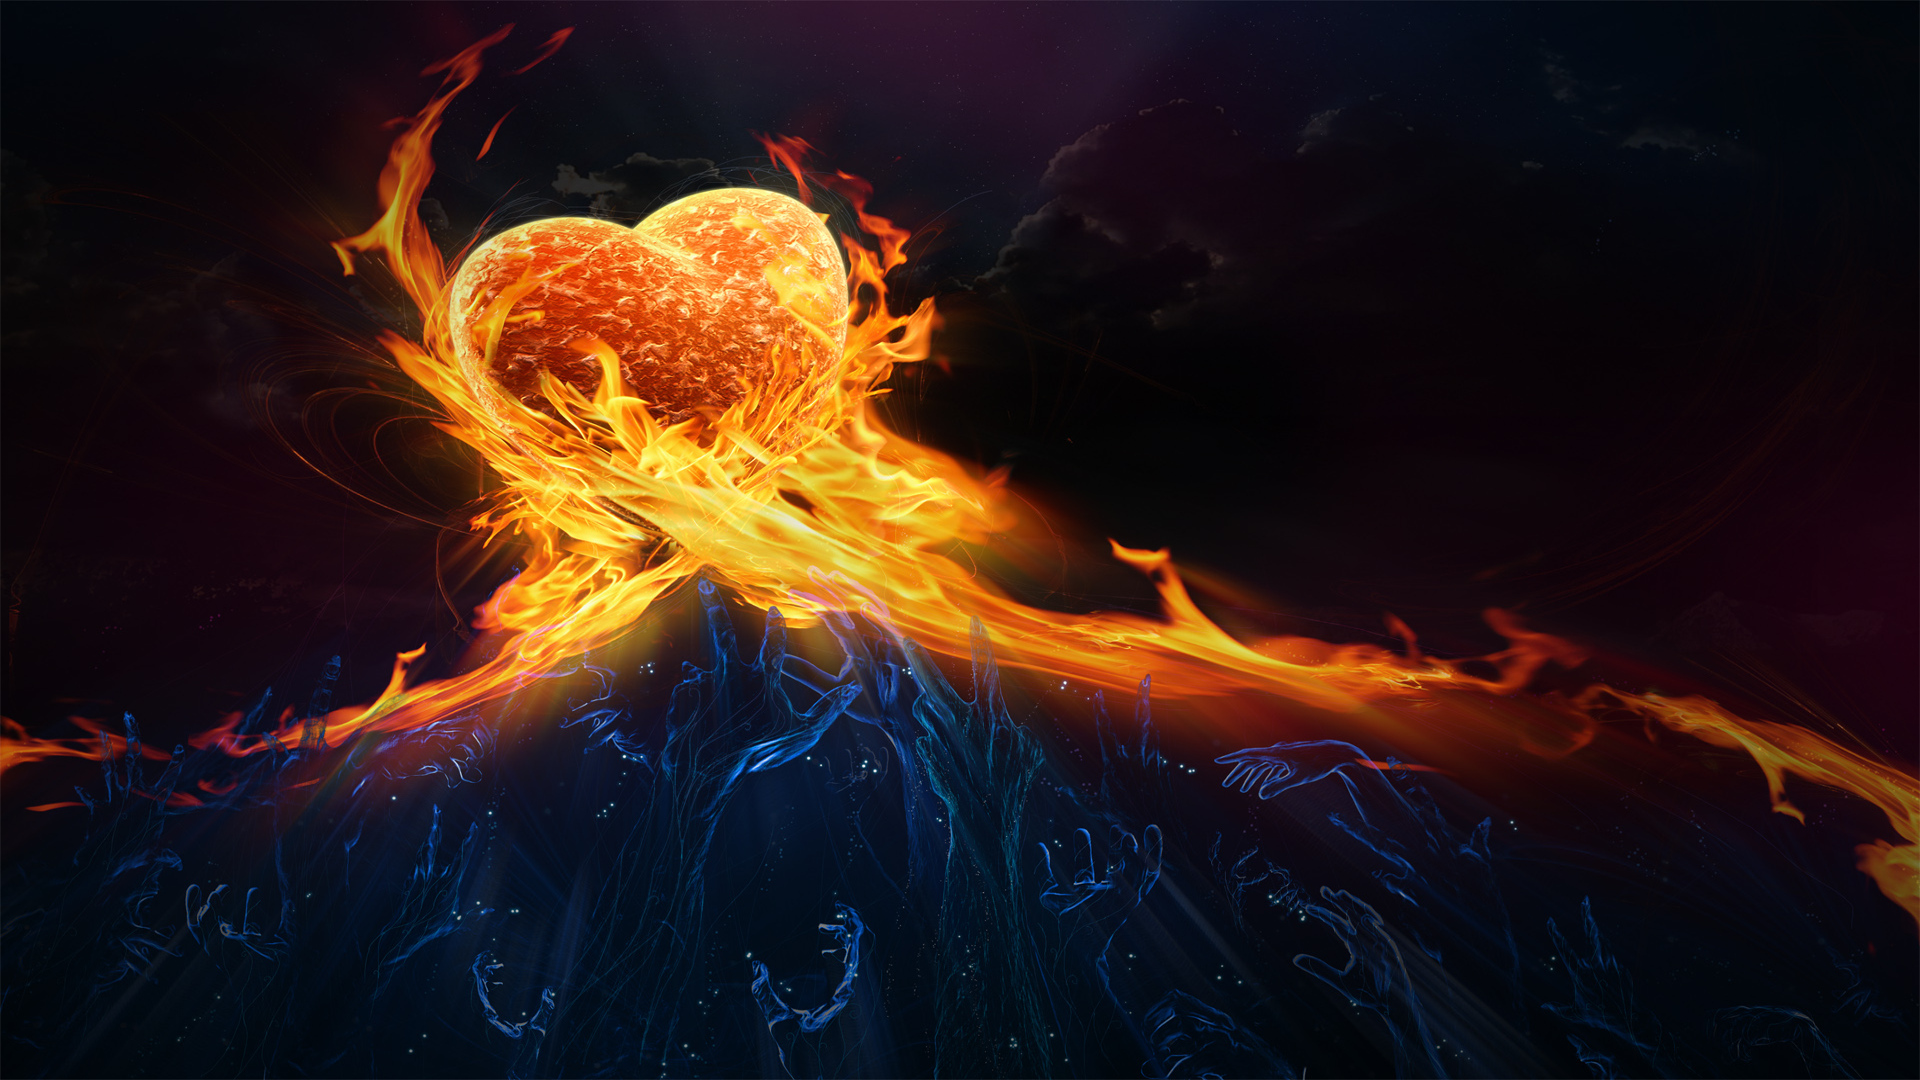 Abstract Clouds Love Fire Fantasy Art Hearts